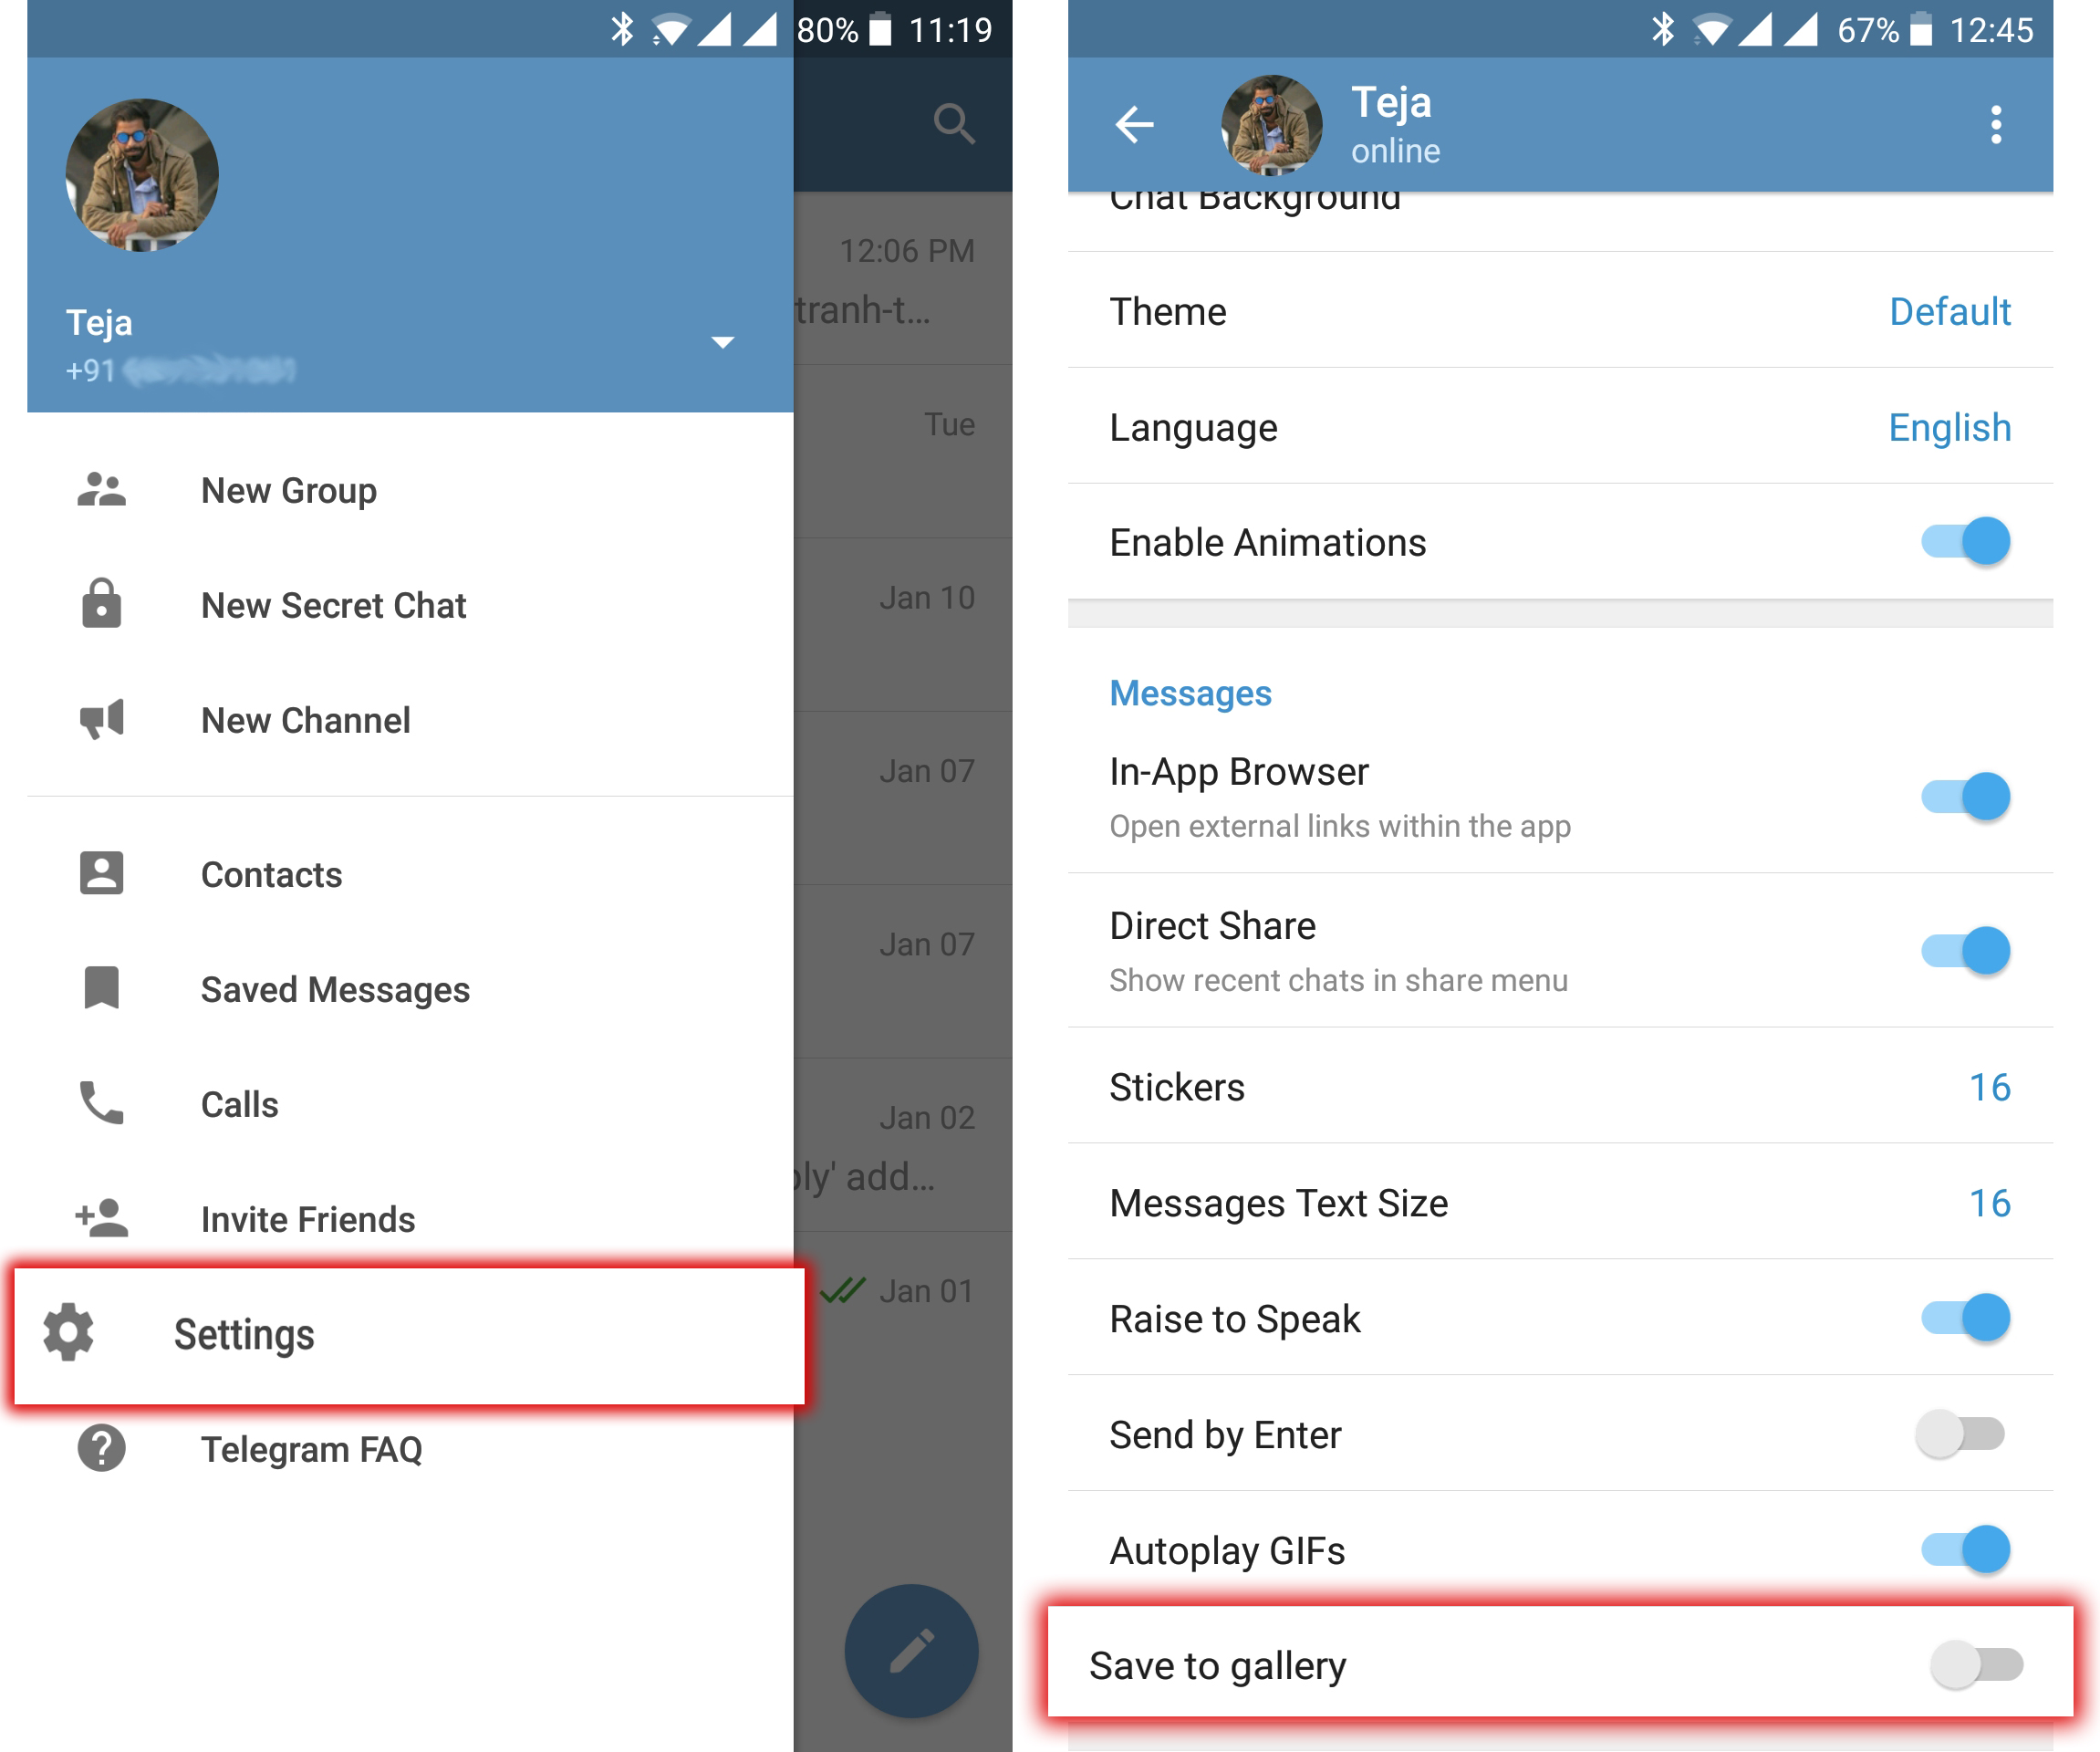 New Tricks] 10 Cool Telegram Messenger App Tricks To Try In 2018